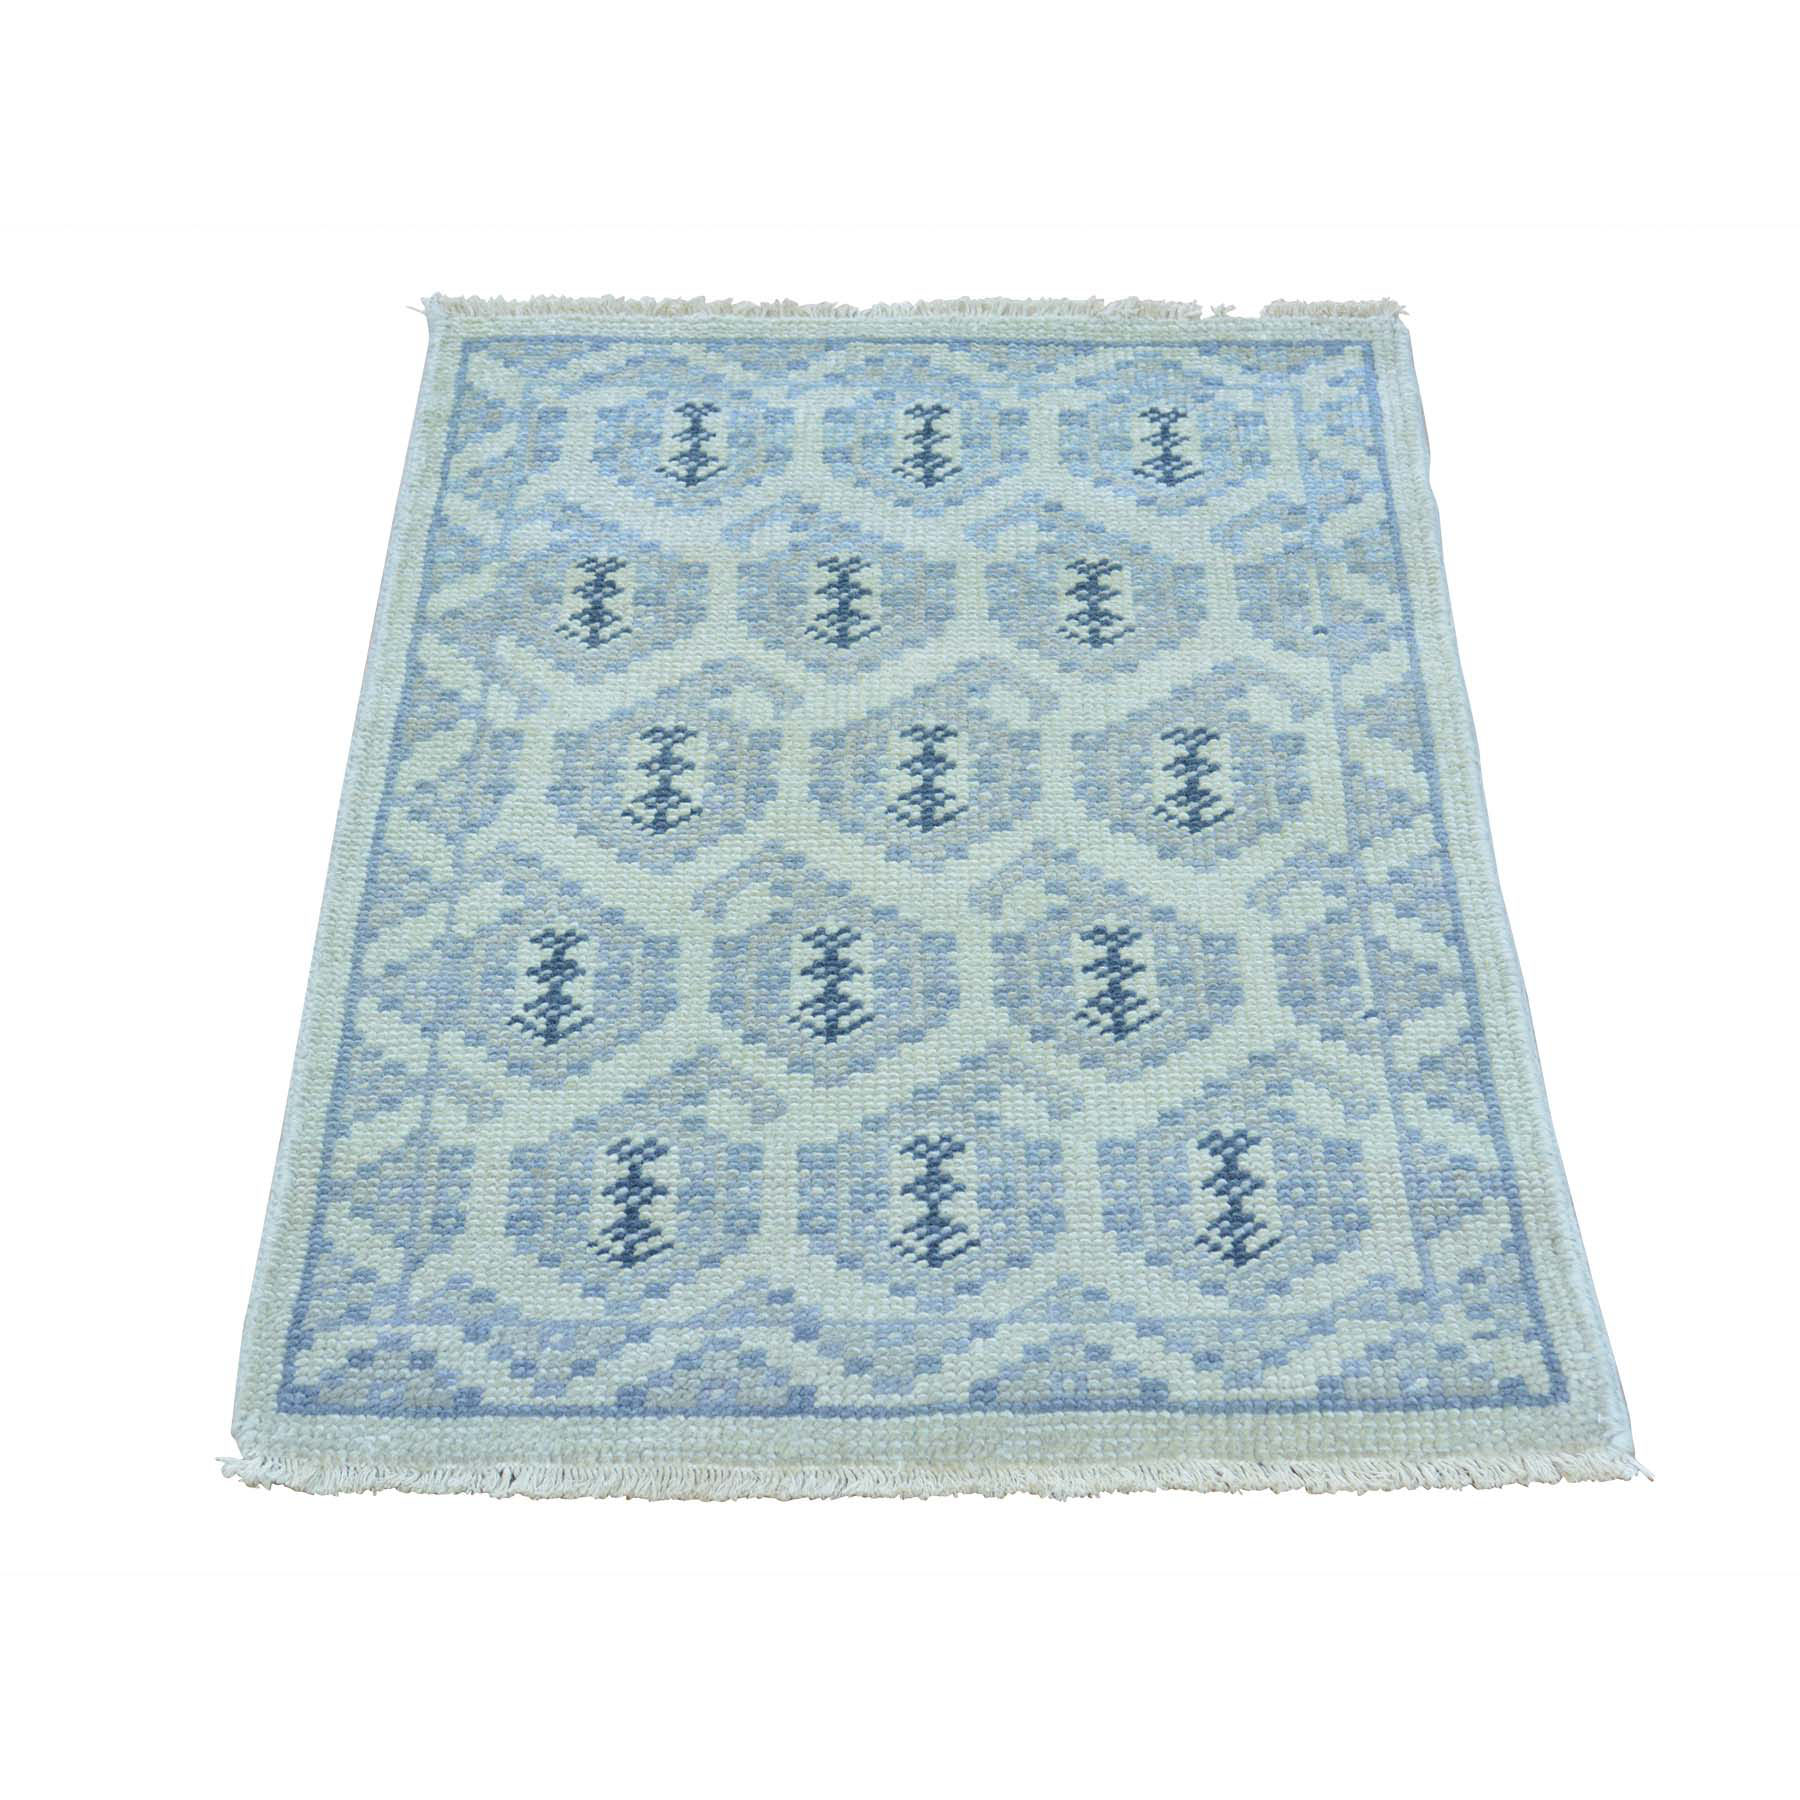 2'x3' Turkish Knot Pure Wool Paisley Design Hand Knotted Oriental Rug